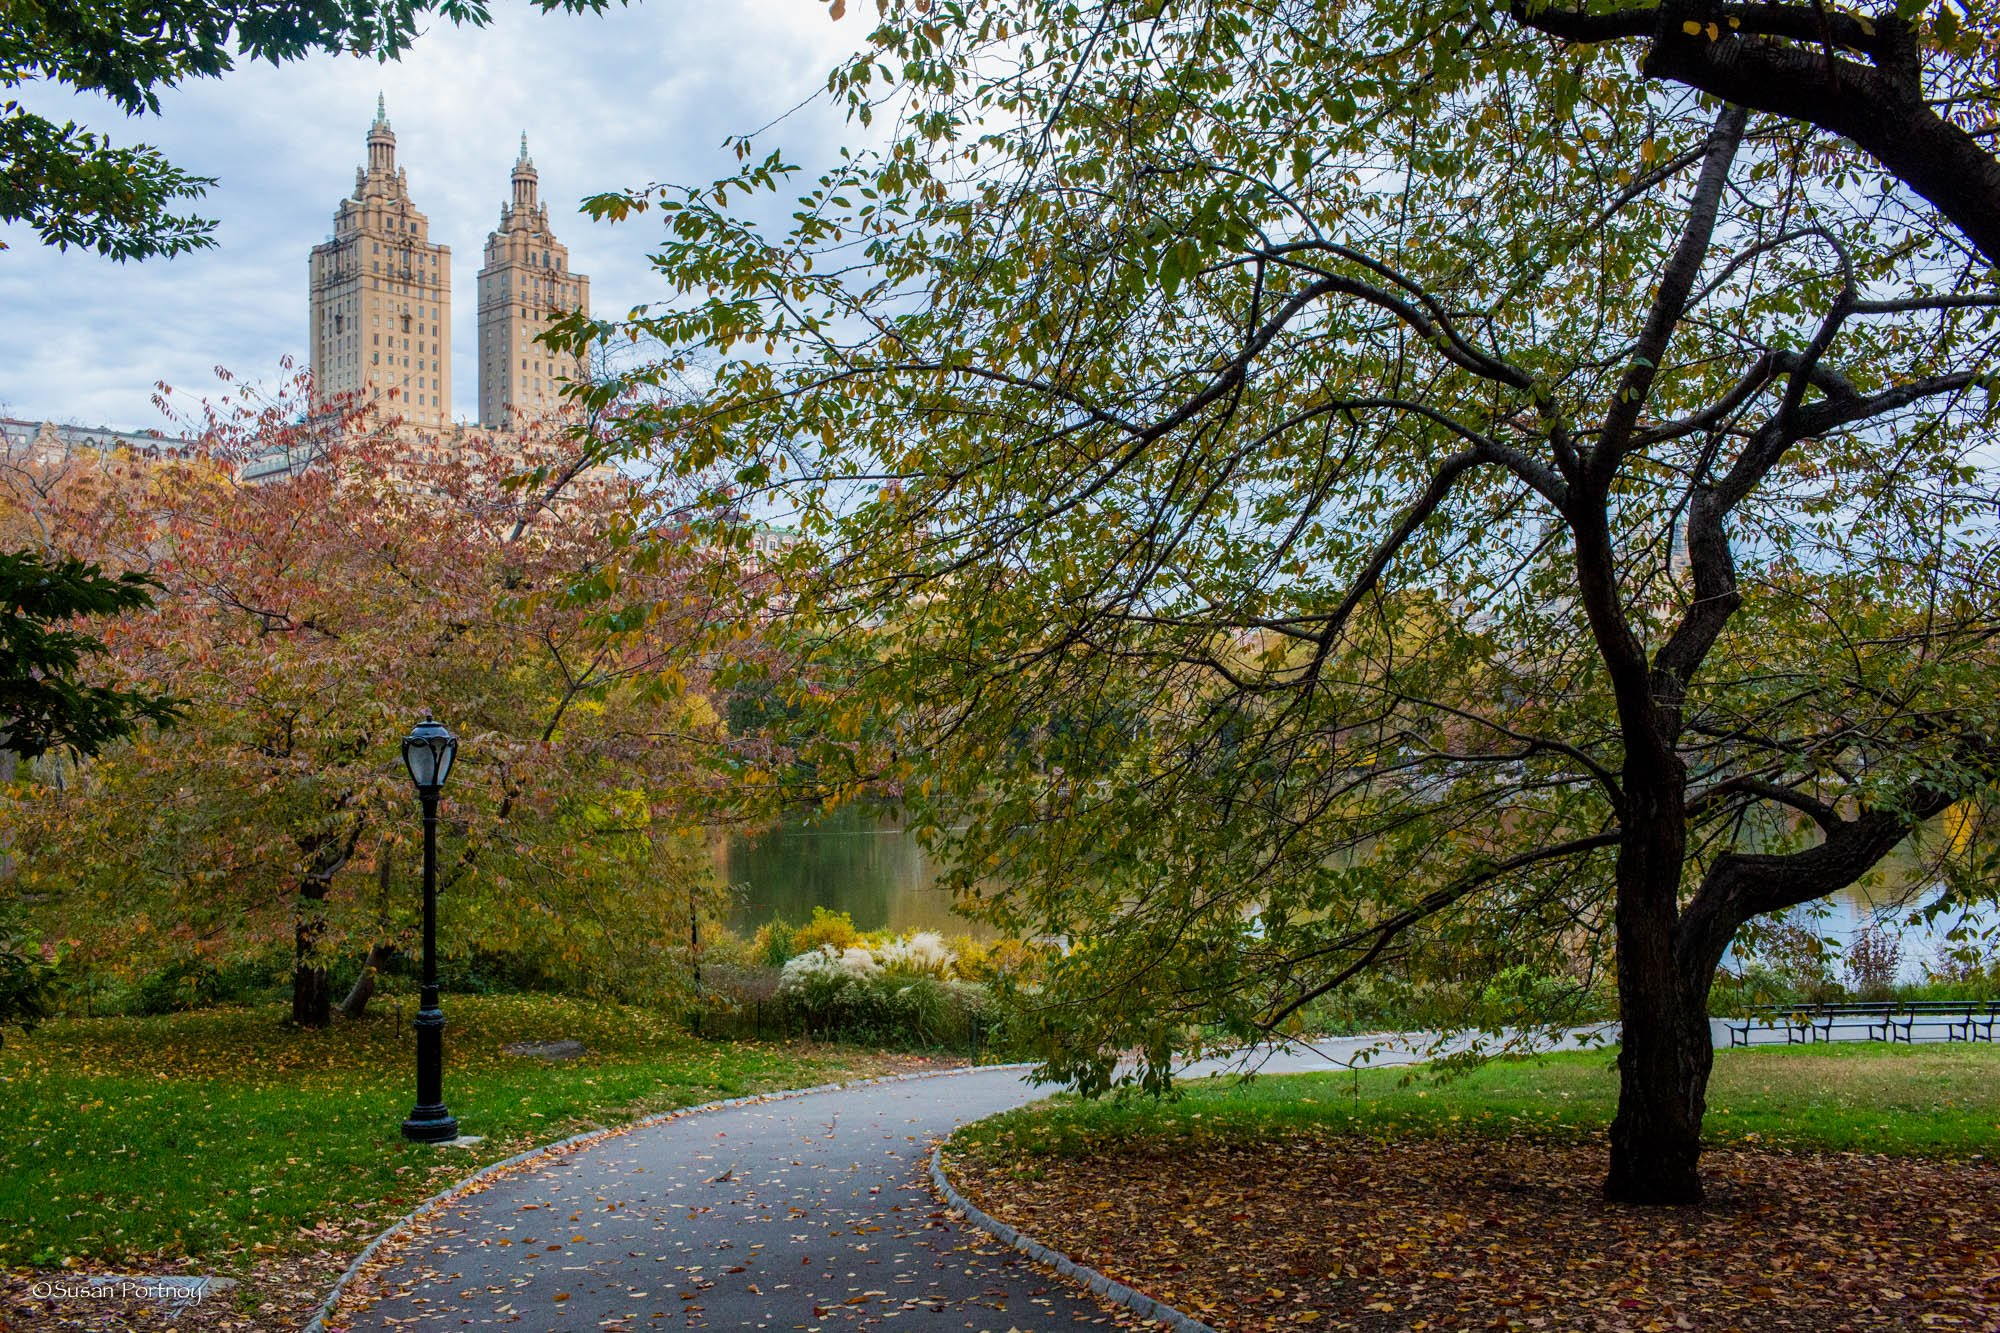 Walkway at the beginning of Cherry Hill in Central Park in NYC